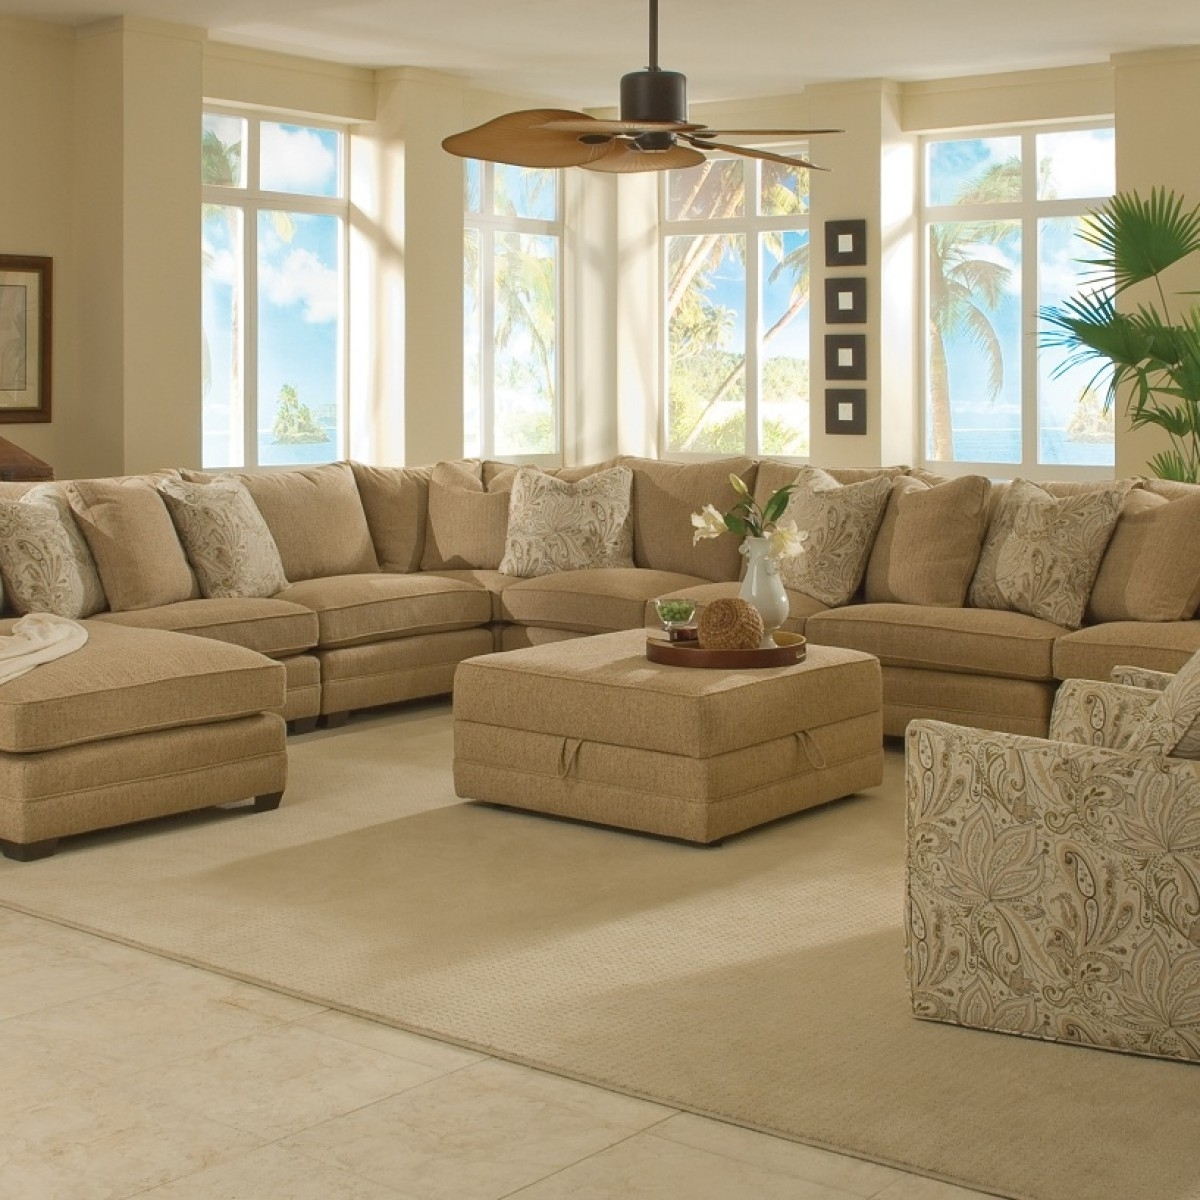 Popular Factors To Consider Before Buying An Extra Large Sectional Sofa Regarding Sectional Couches With Large Ottoman (View 14 of 20)